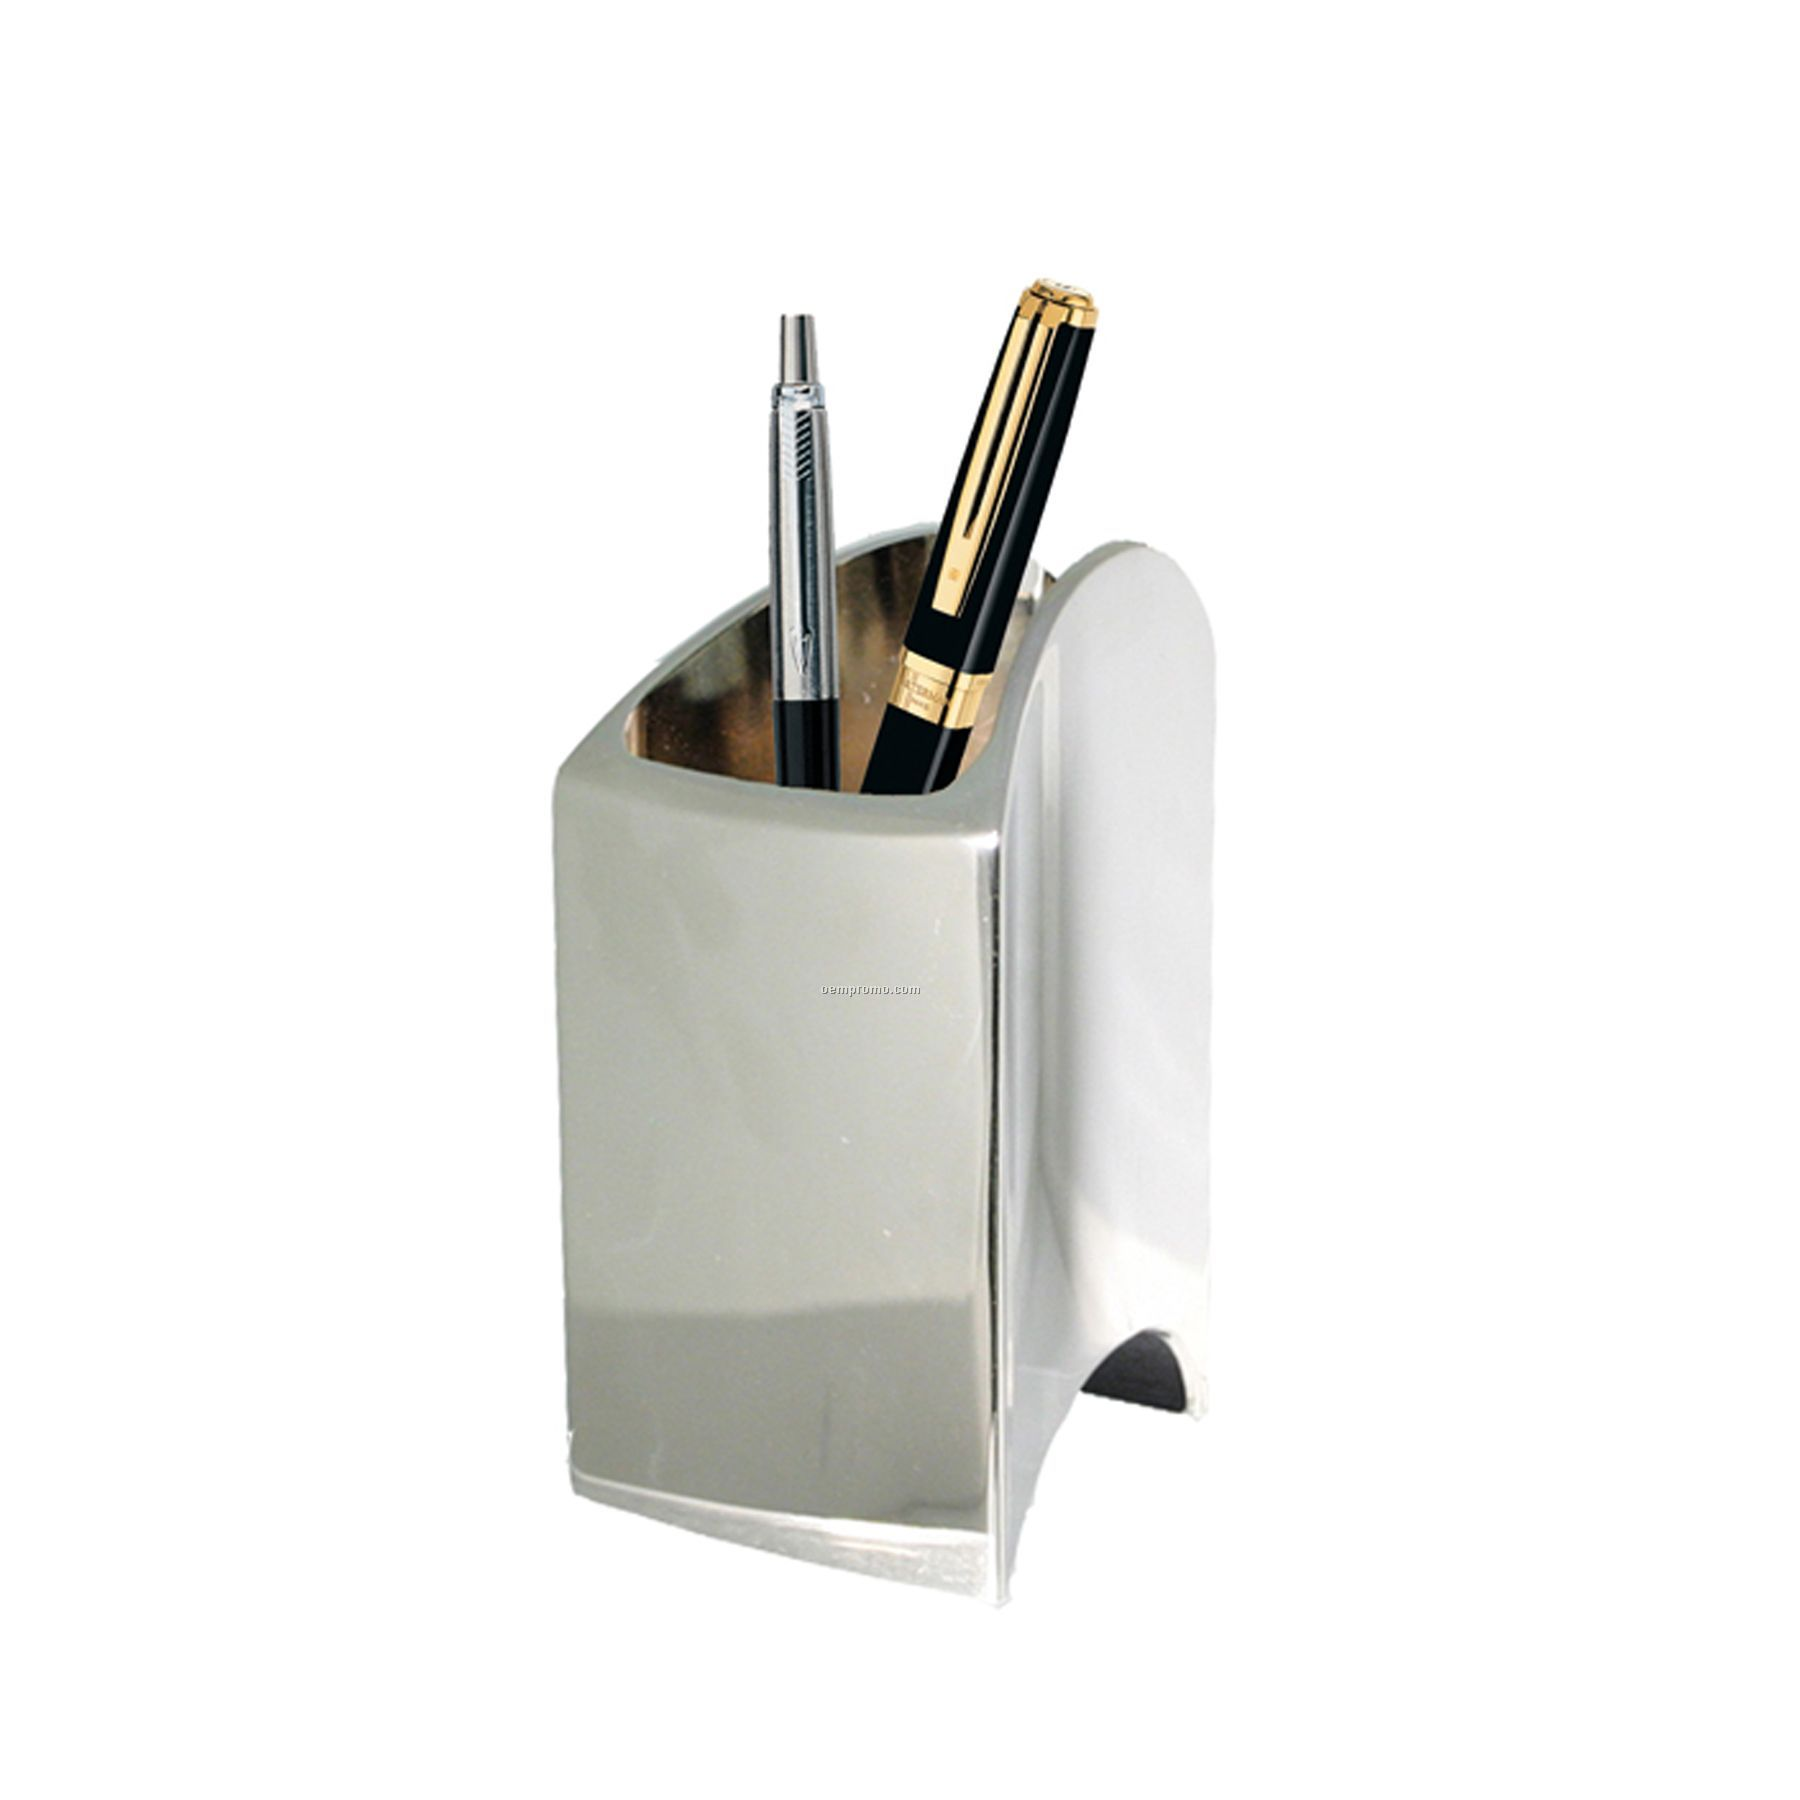 Pen And Pencil Holder For Desk Pen Pencil Holders China Wholesale Pen Pencil Holders